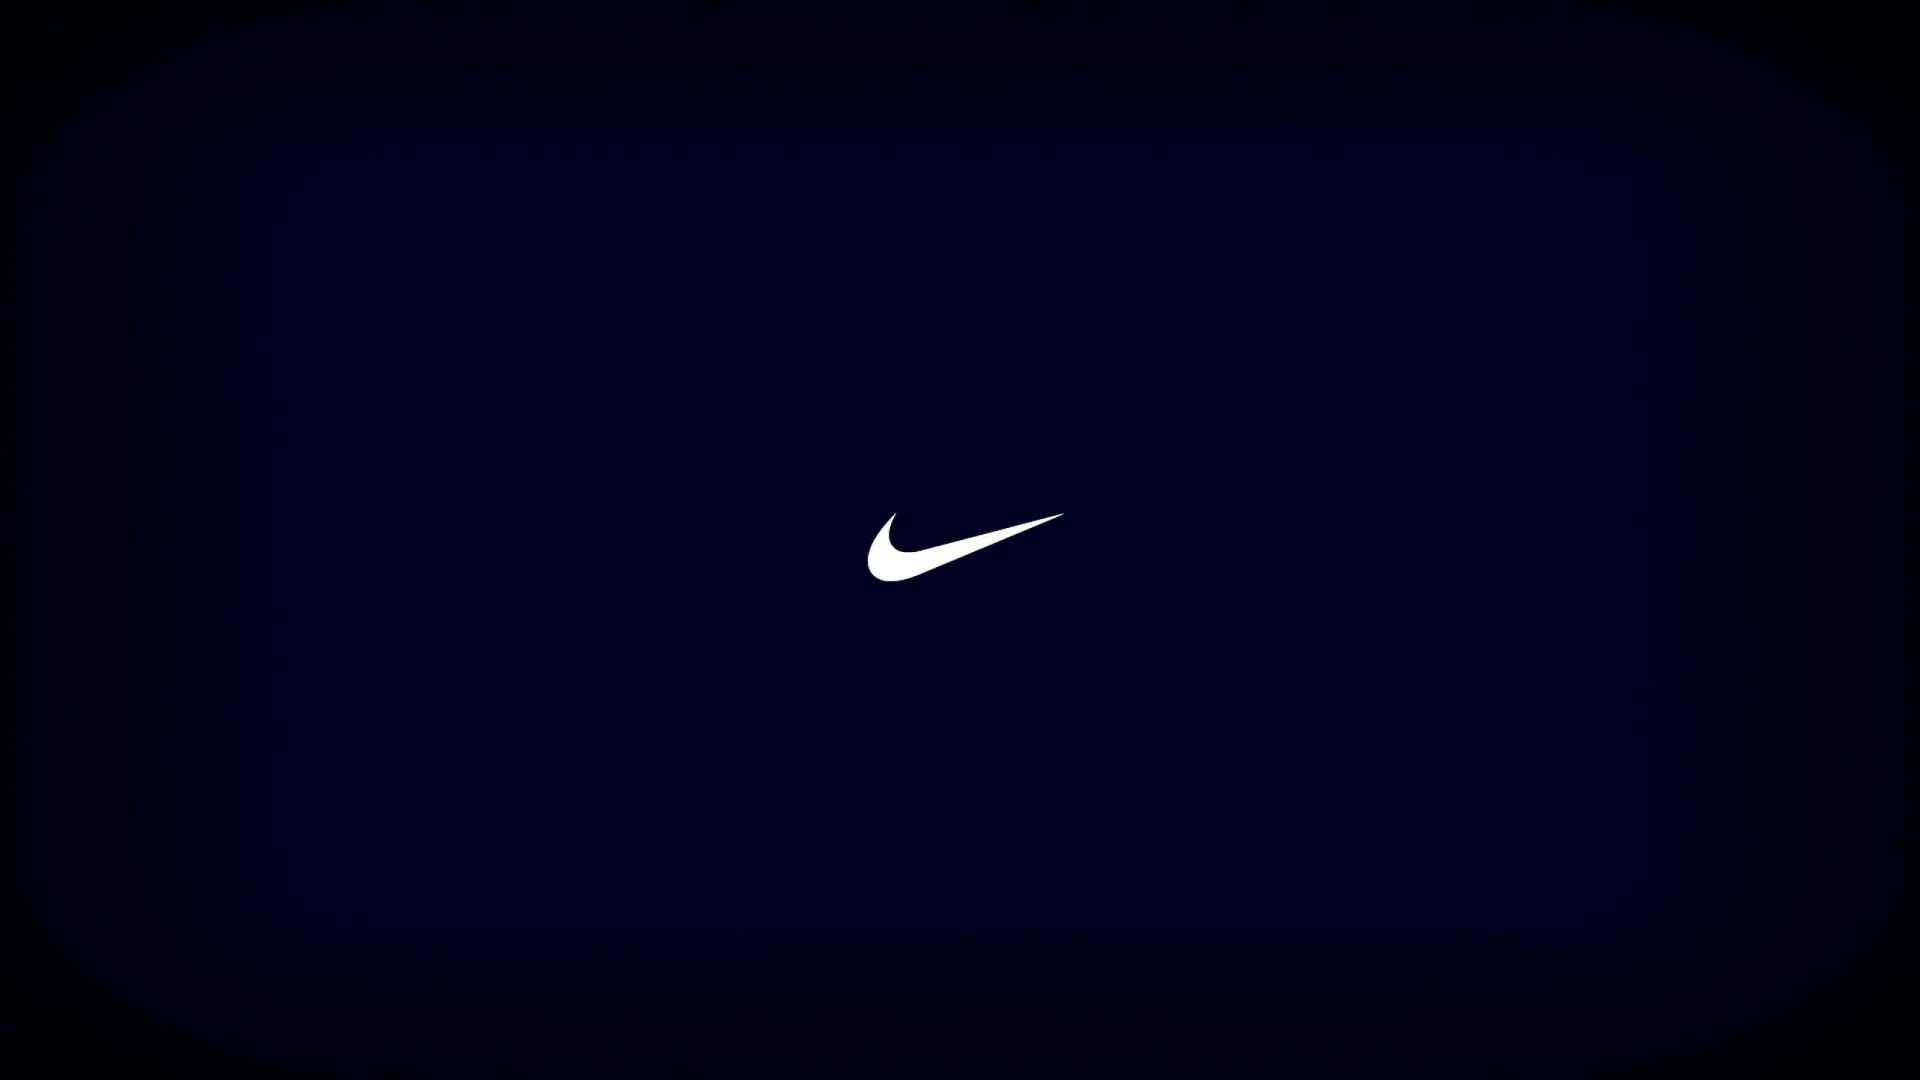 Nike logo wallpaper blue